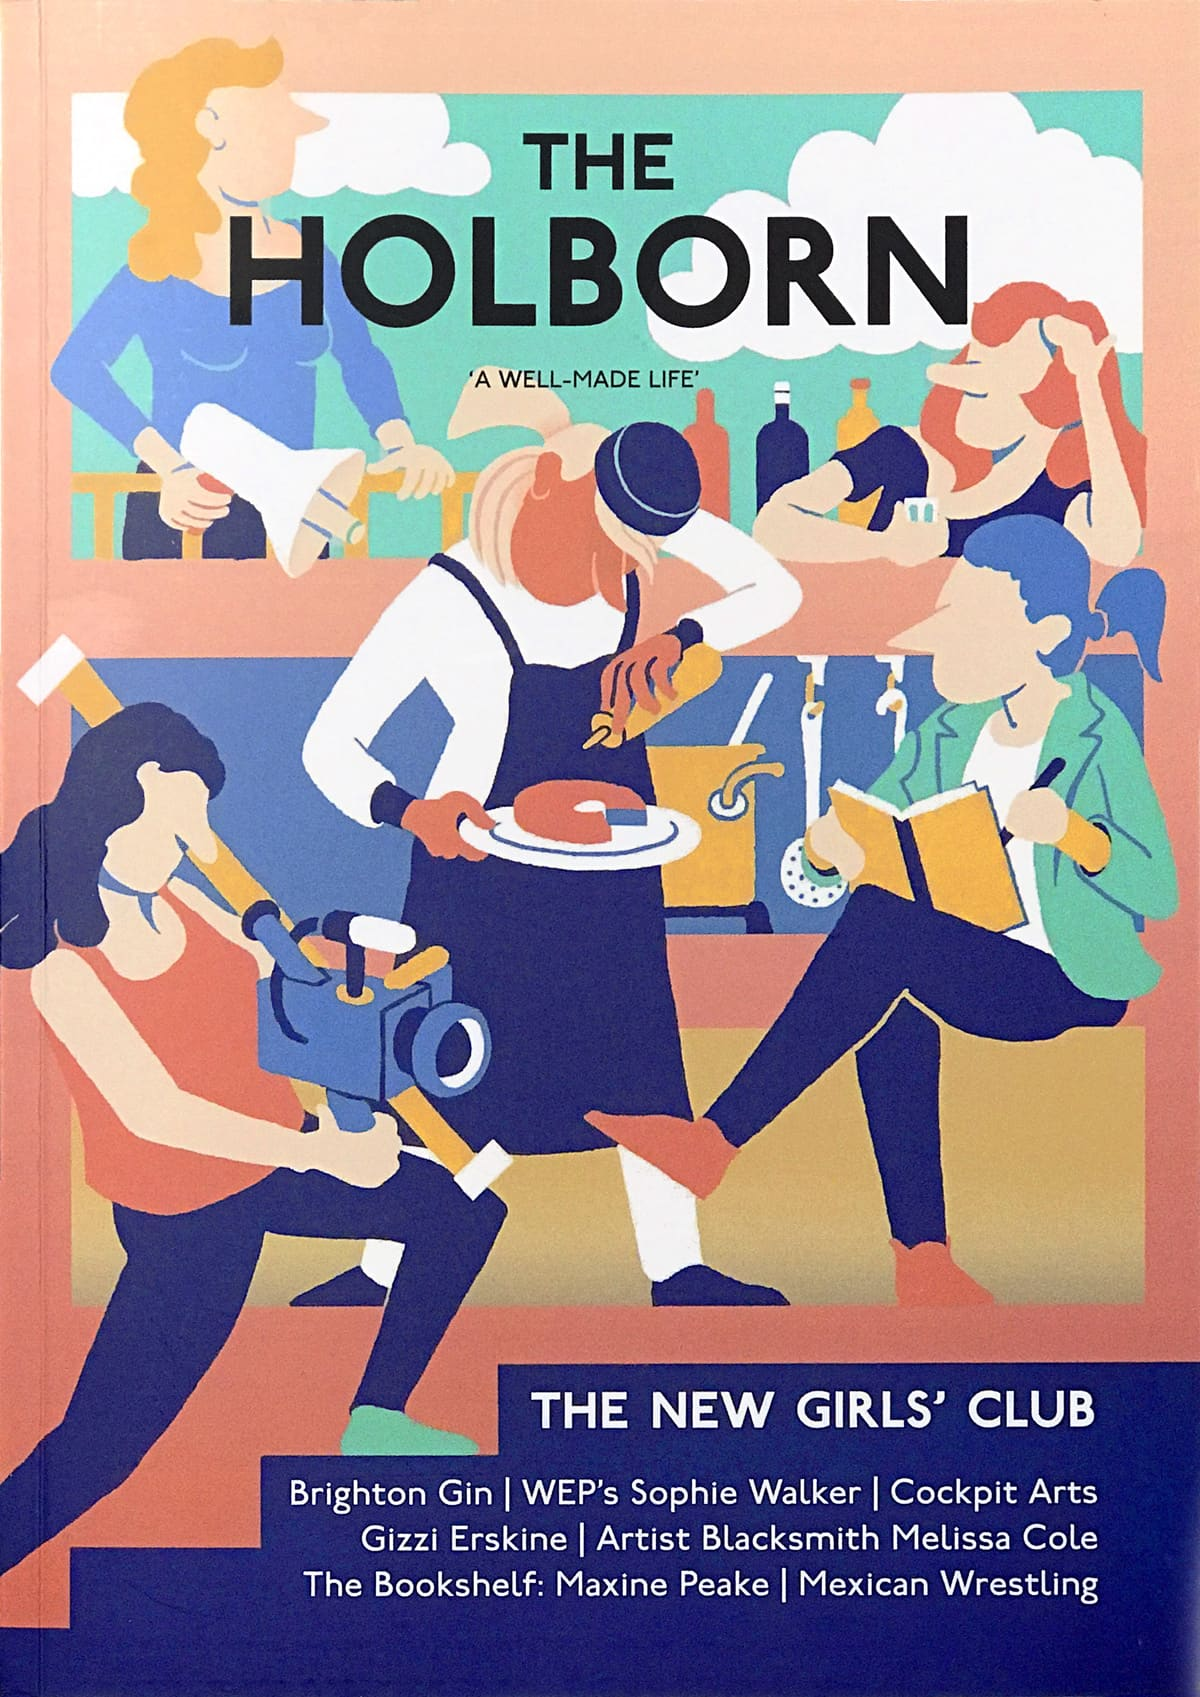 The Holborn Cover Illustration